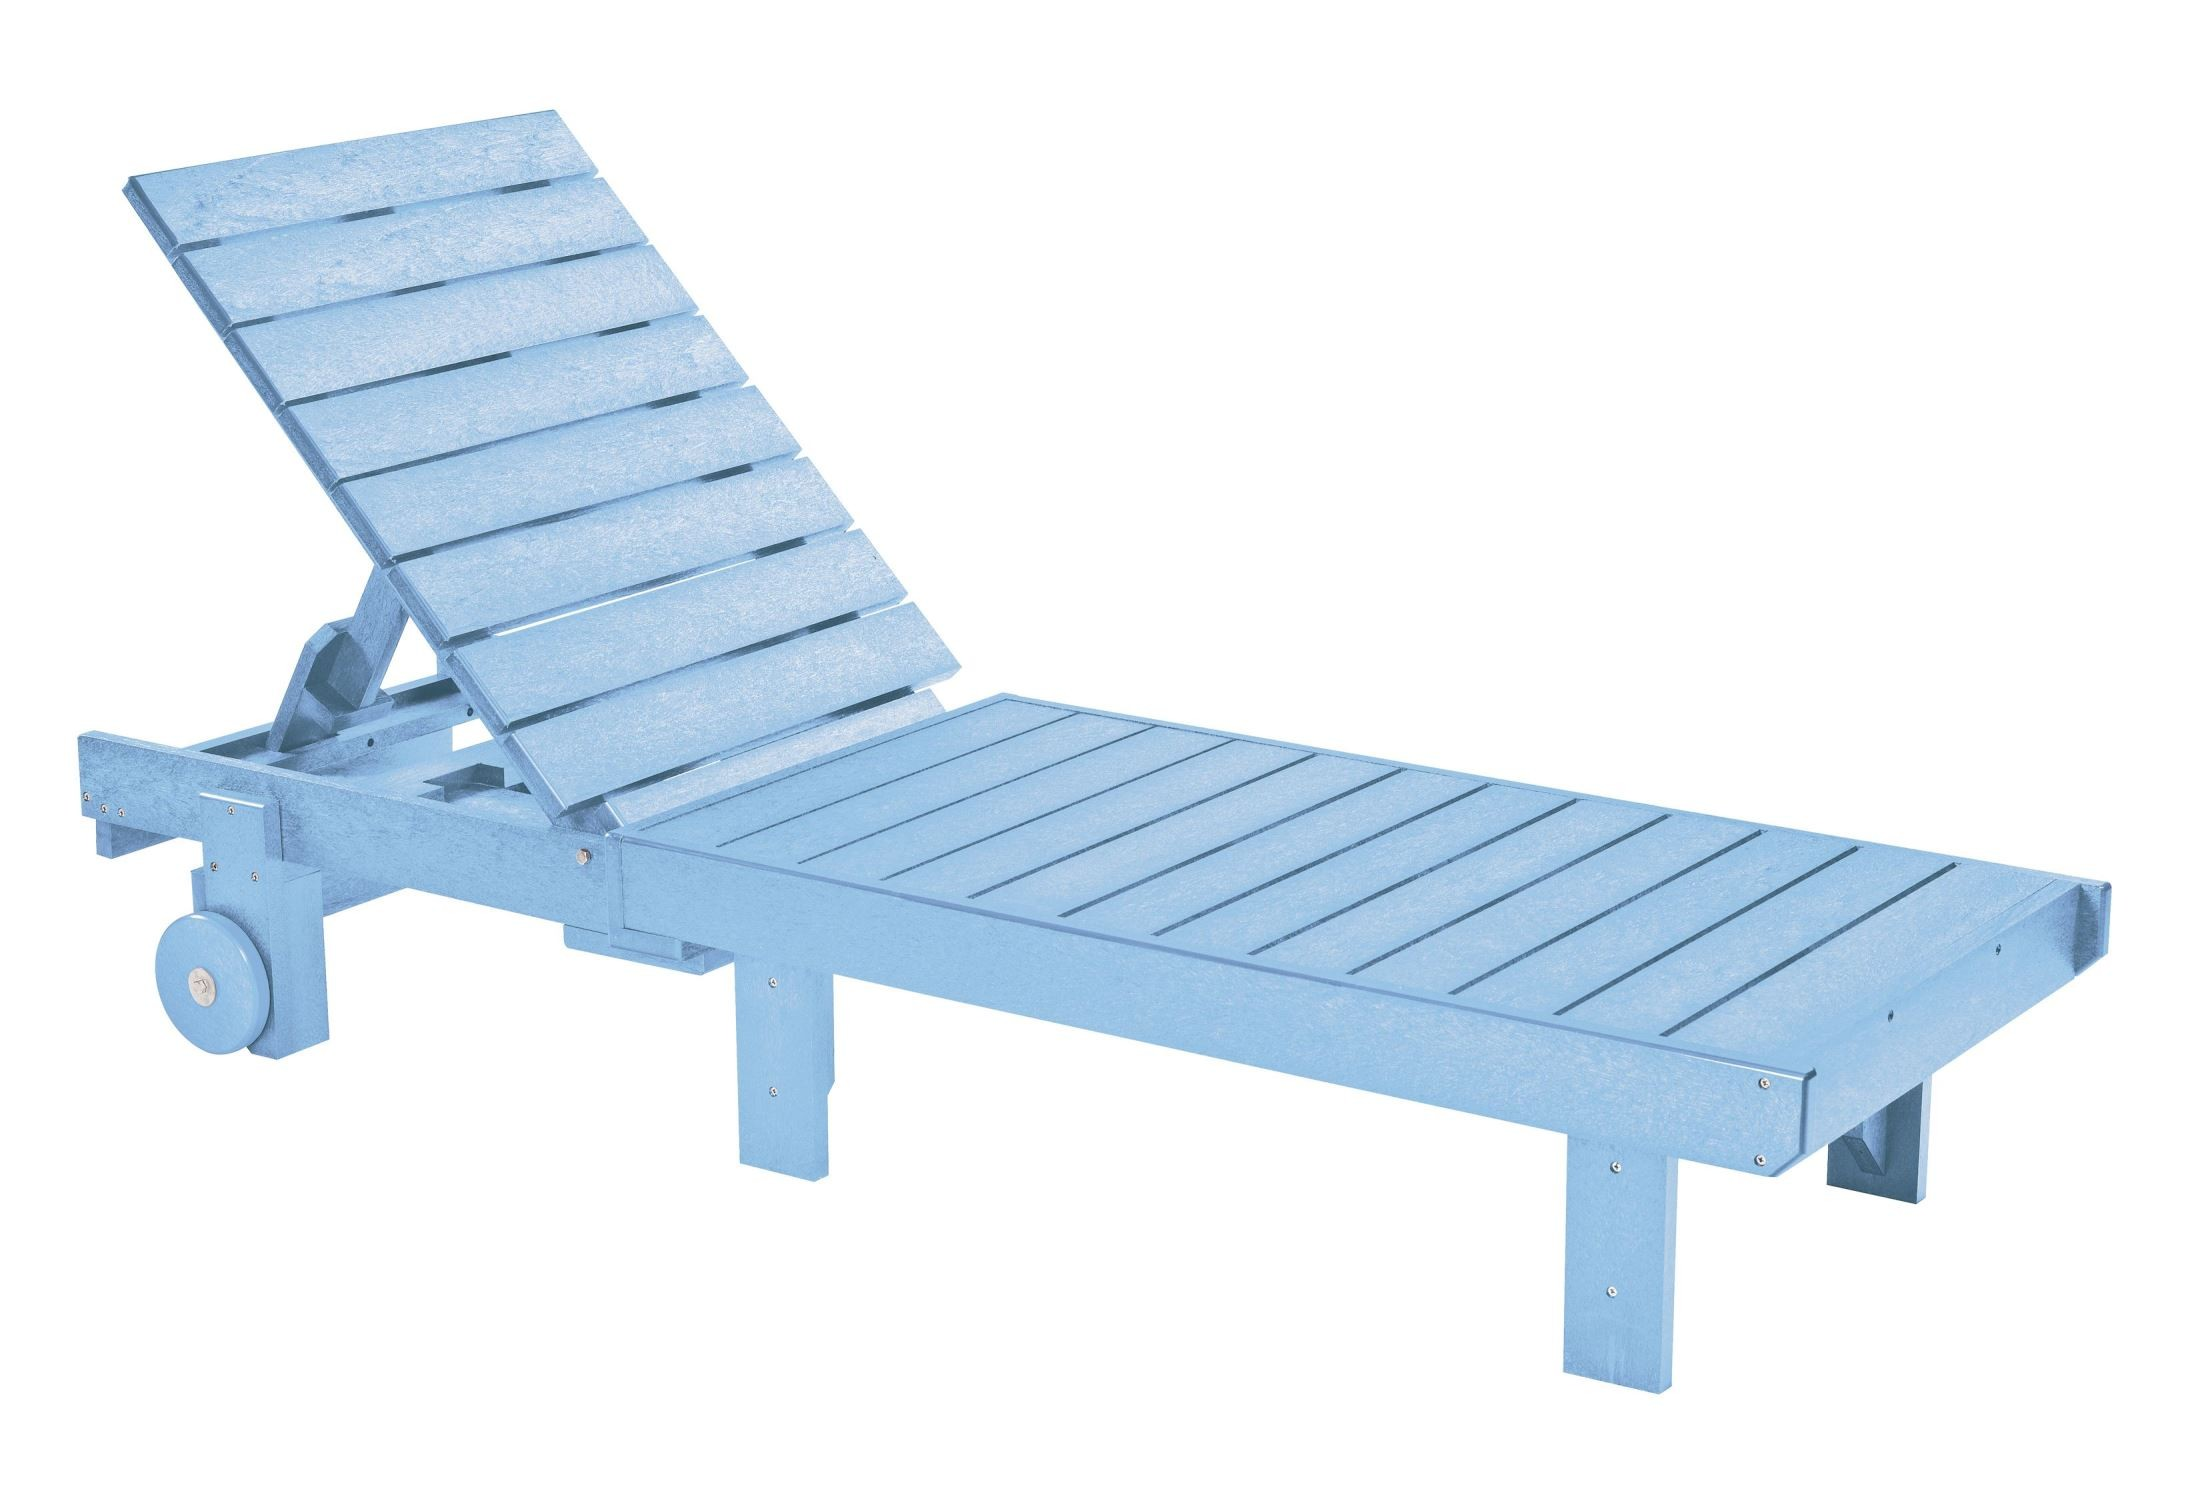 Generations Sky Blue Chaise Lounge with wheels from CR Plastic L78 12